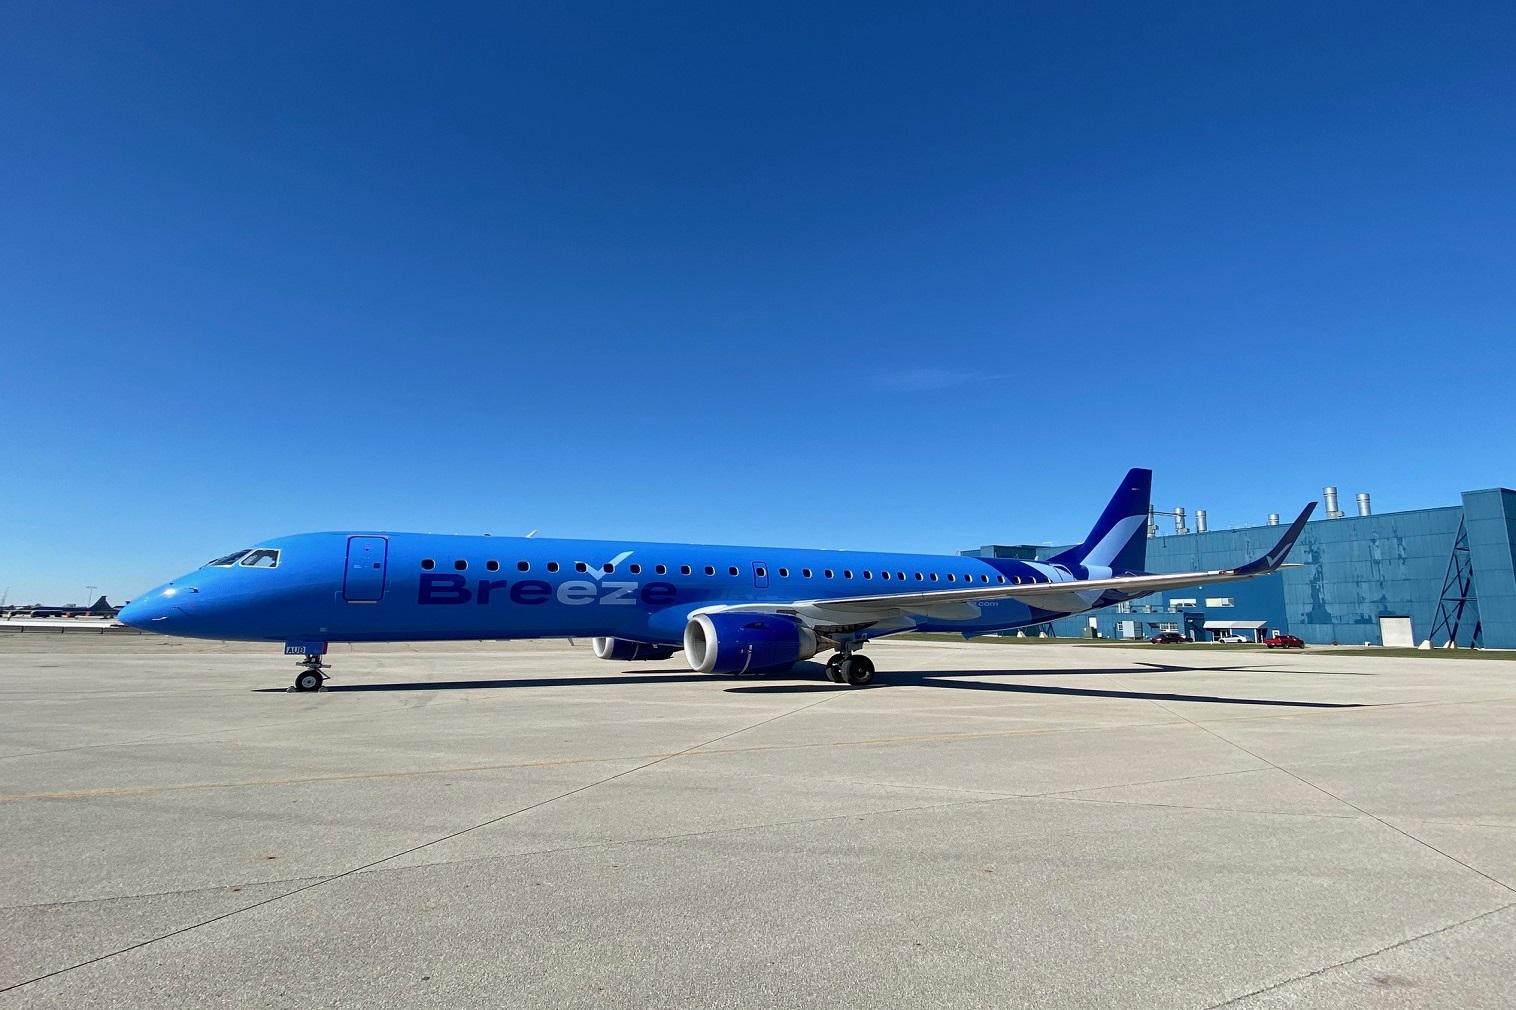 The first flights will operate between Charleston, SC, Tampa, FL and Hartford, CT, starting May 27, with remaining destinations to be added each week through July 22, 2021. Flights are now on sale at www.flybreeze.com and the Breeze app, starting at just $39* one way.